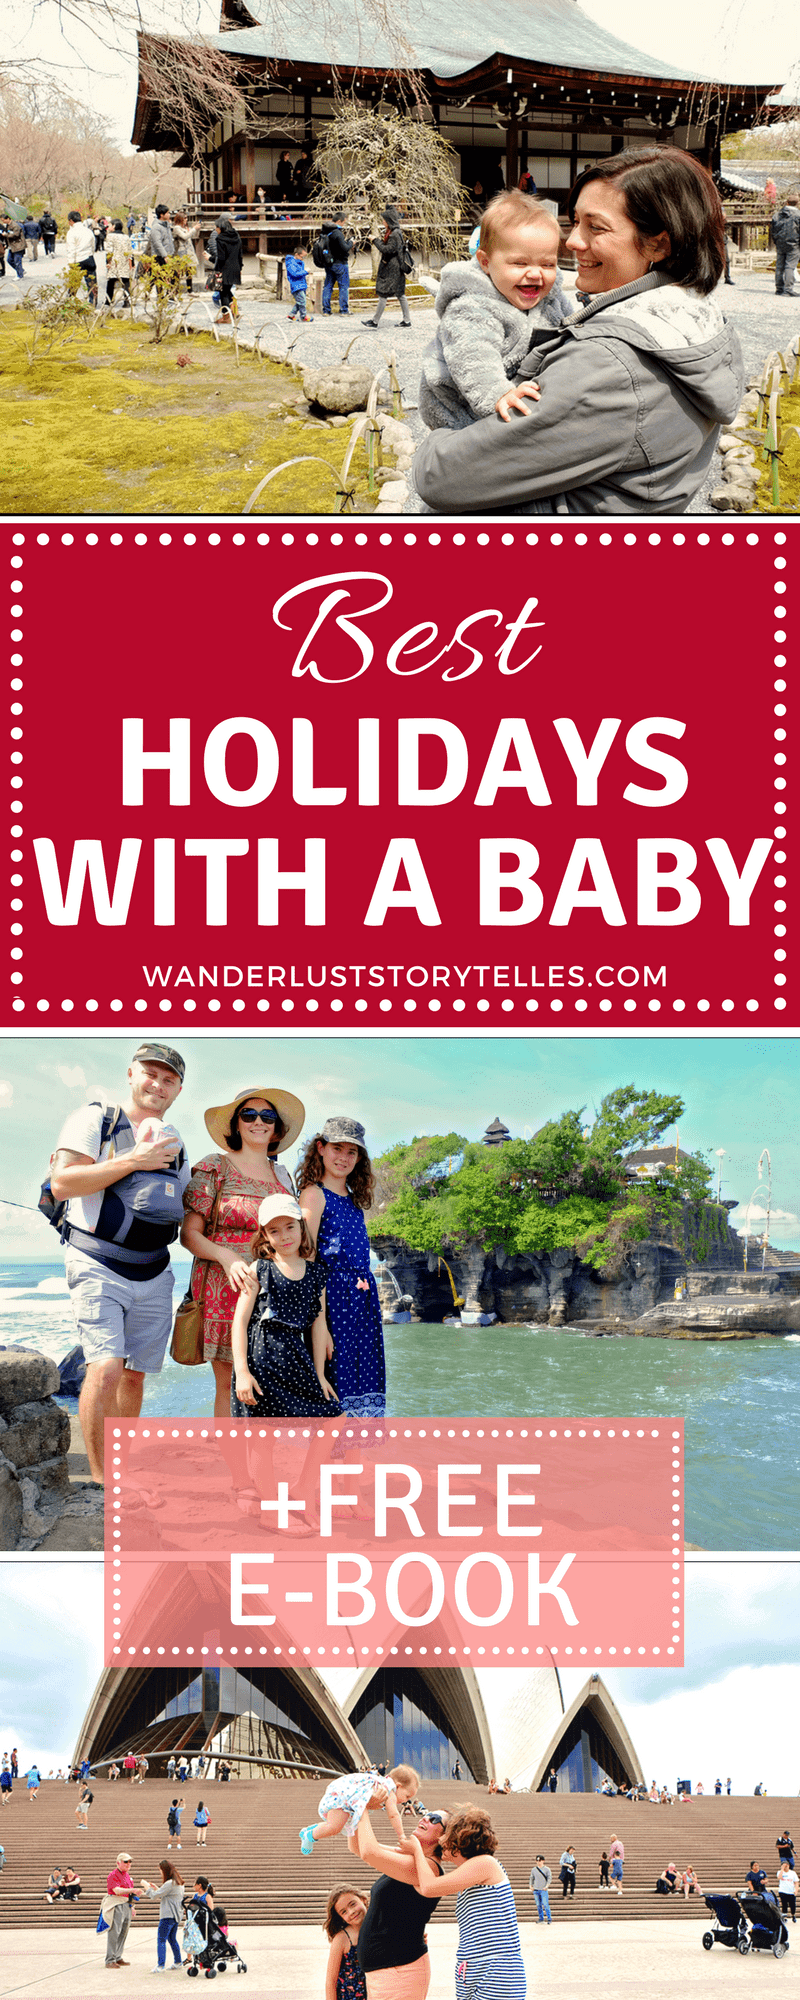 Best holidays with a baby